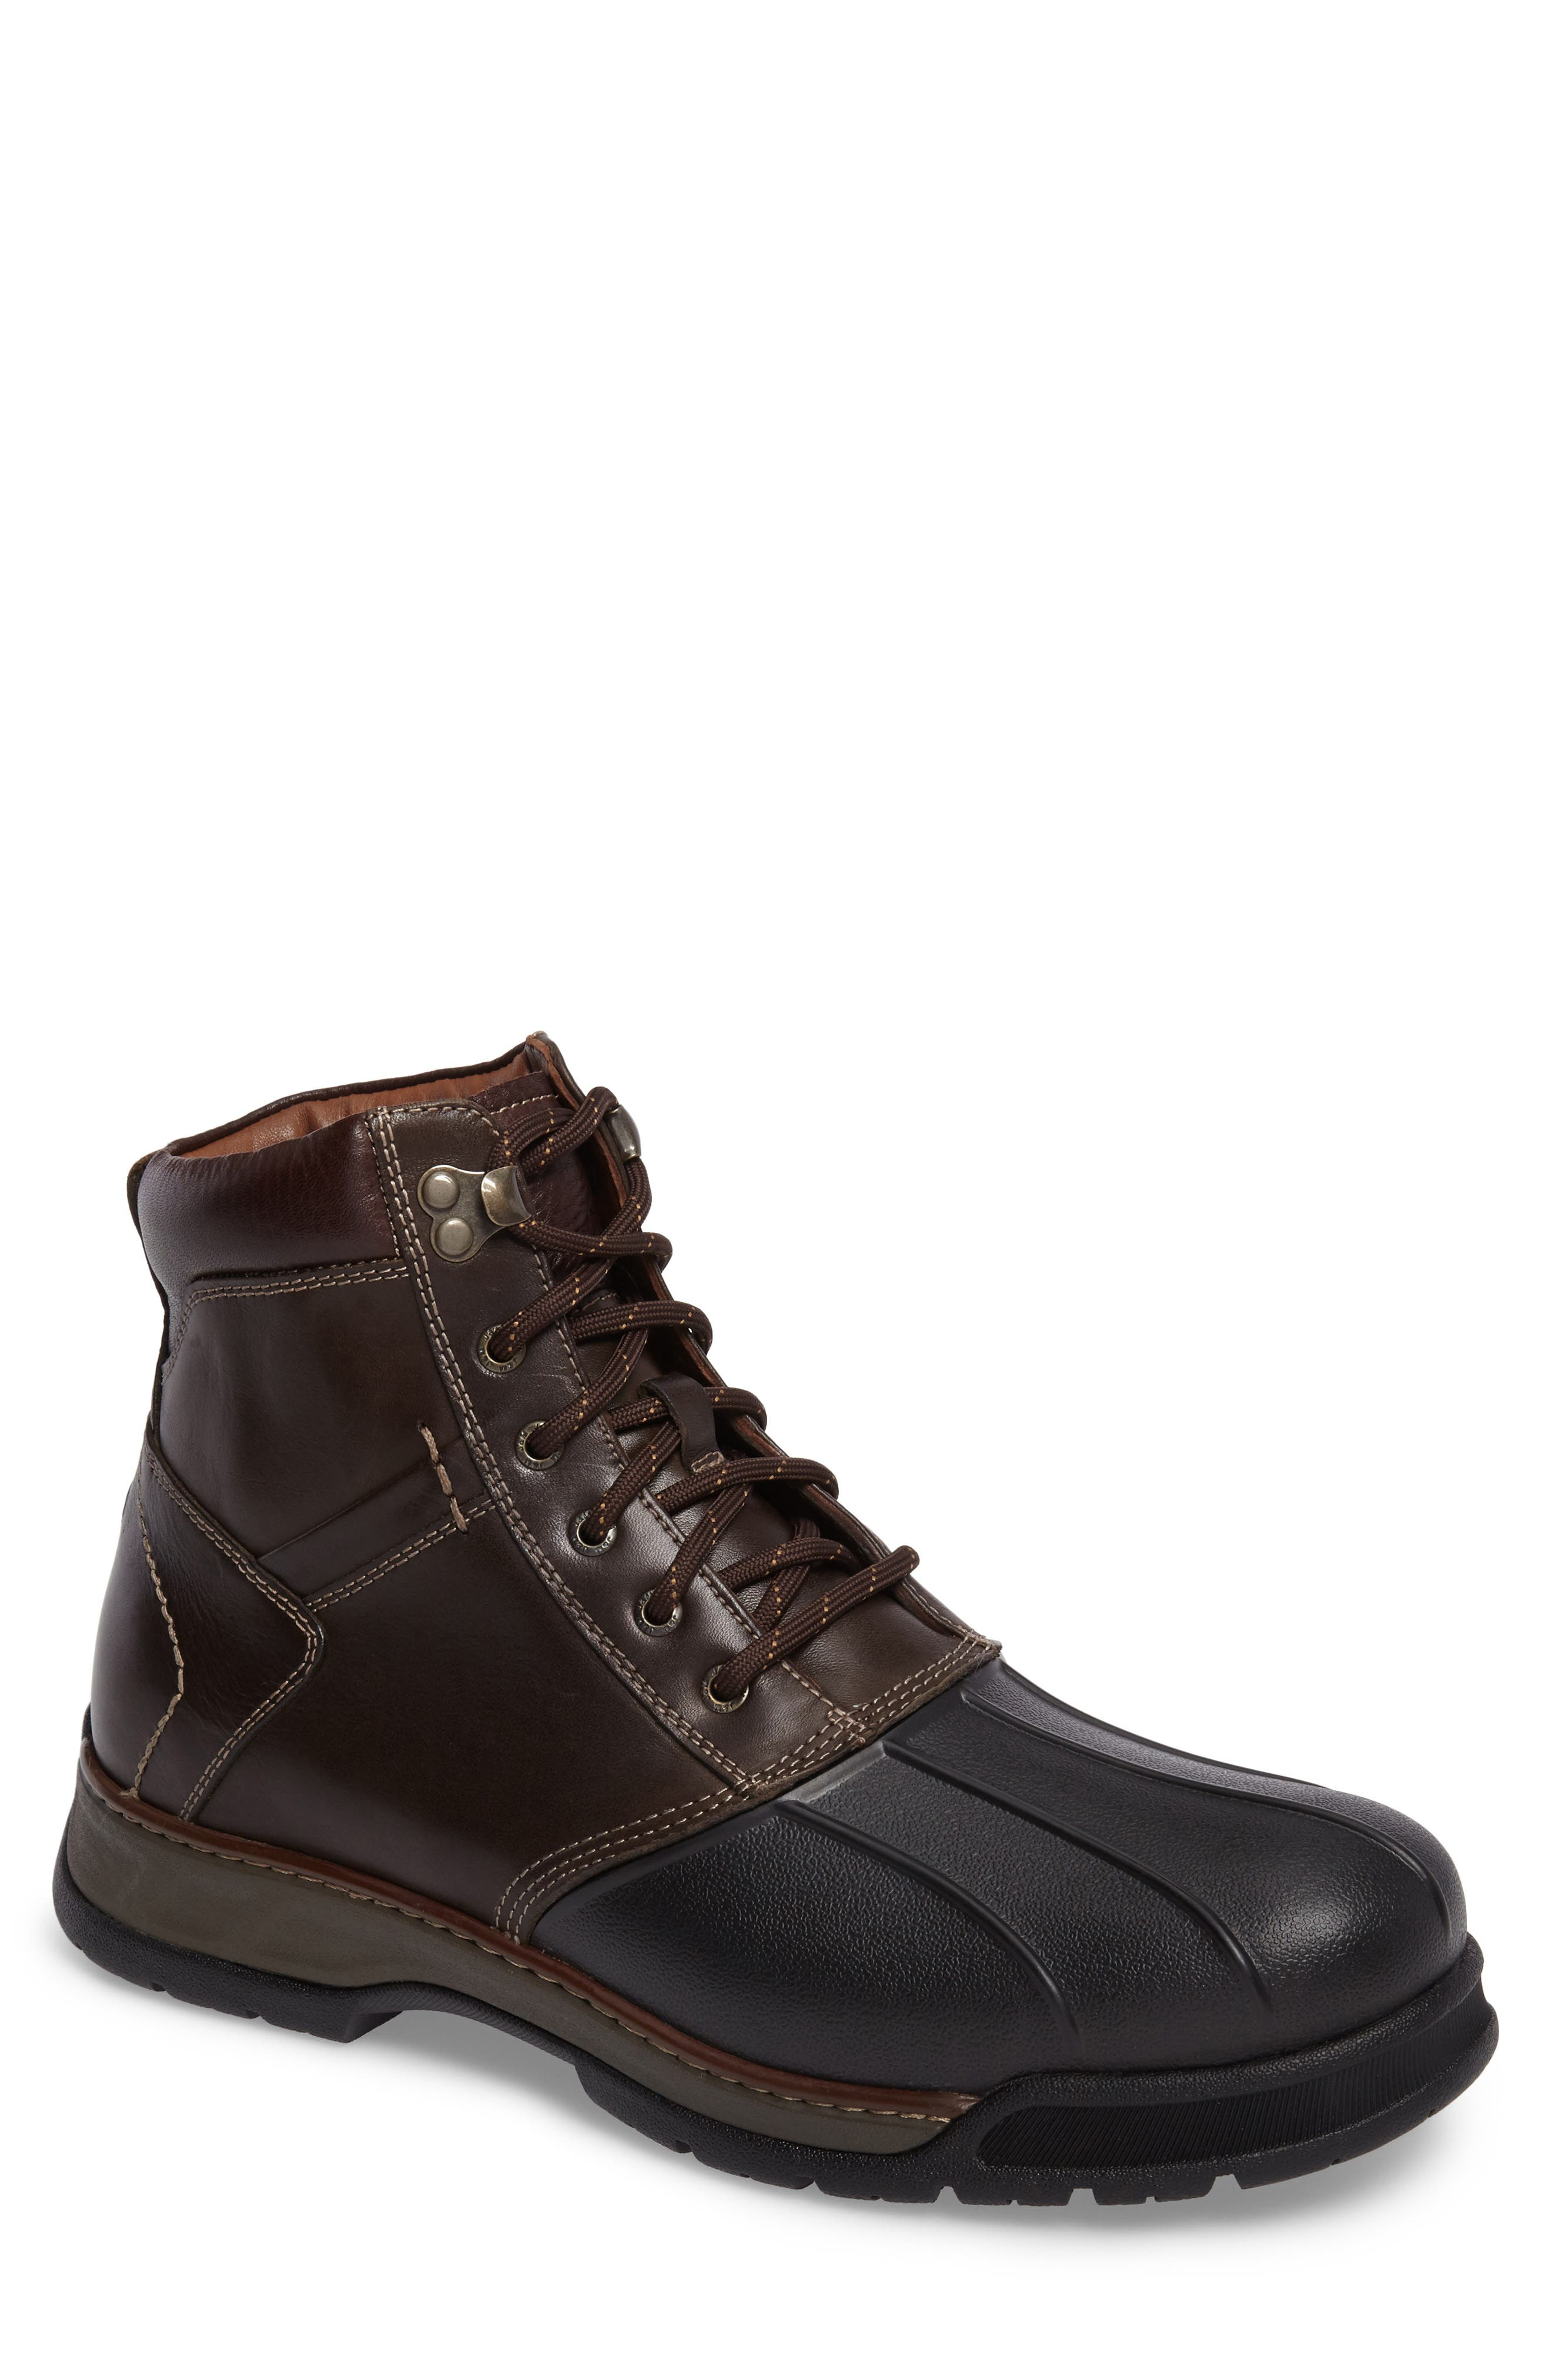 Johnston & Murphy Thompson Duck Boot (Men)